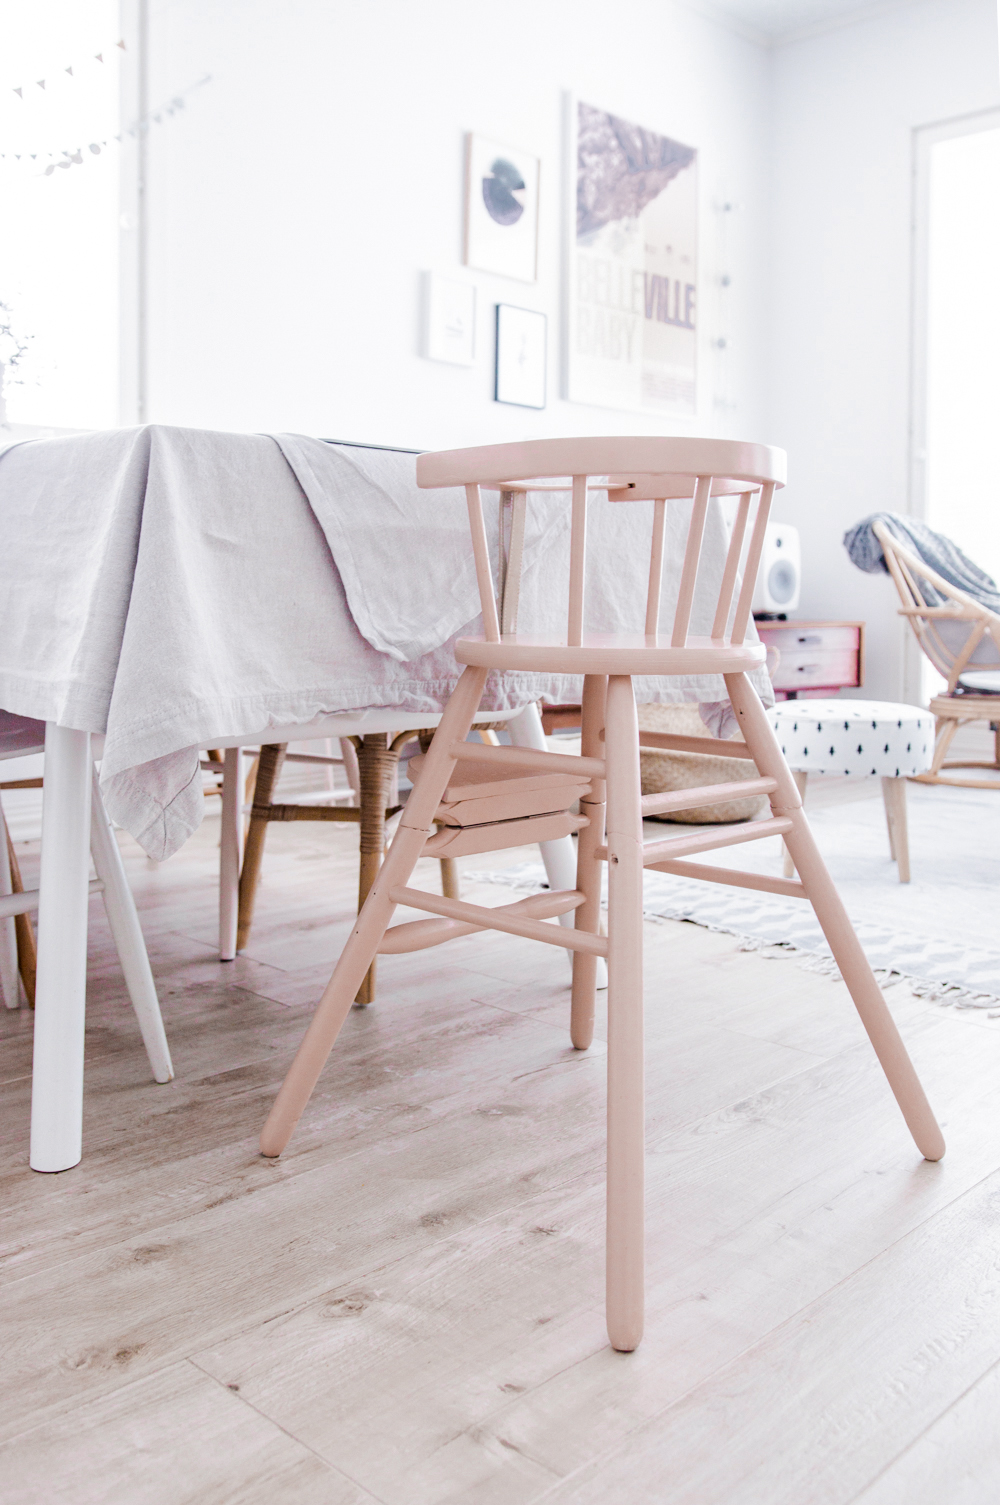 baby-chair-makeover-no-home-without-you-6-of-8-copy